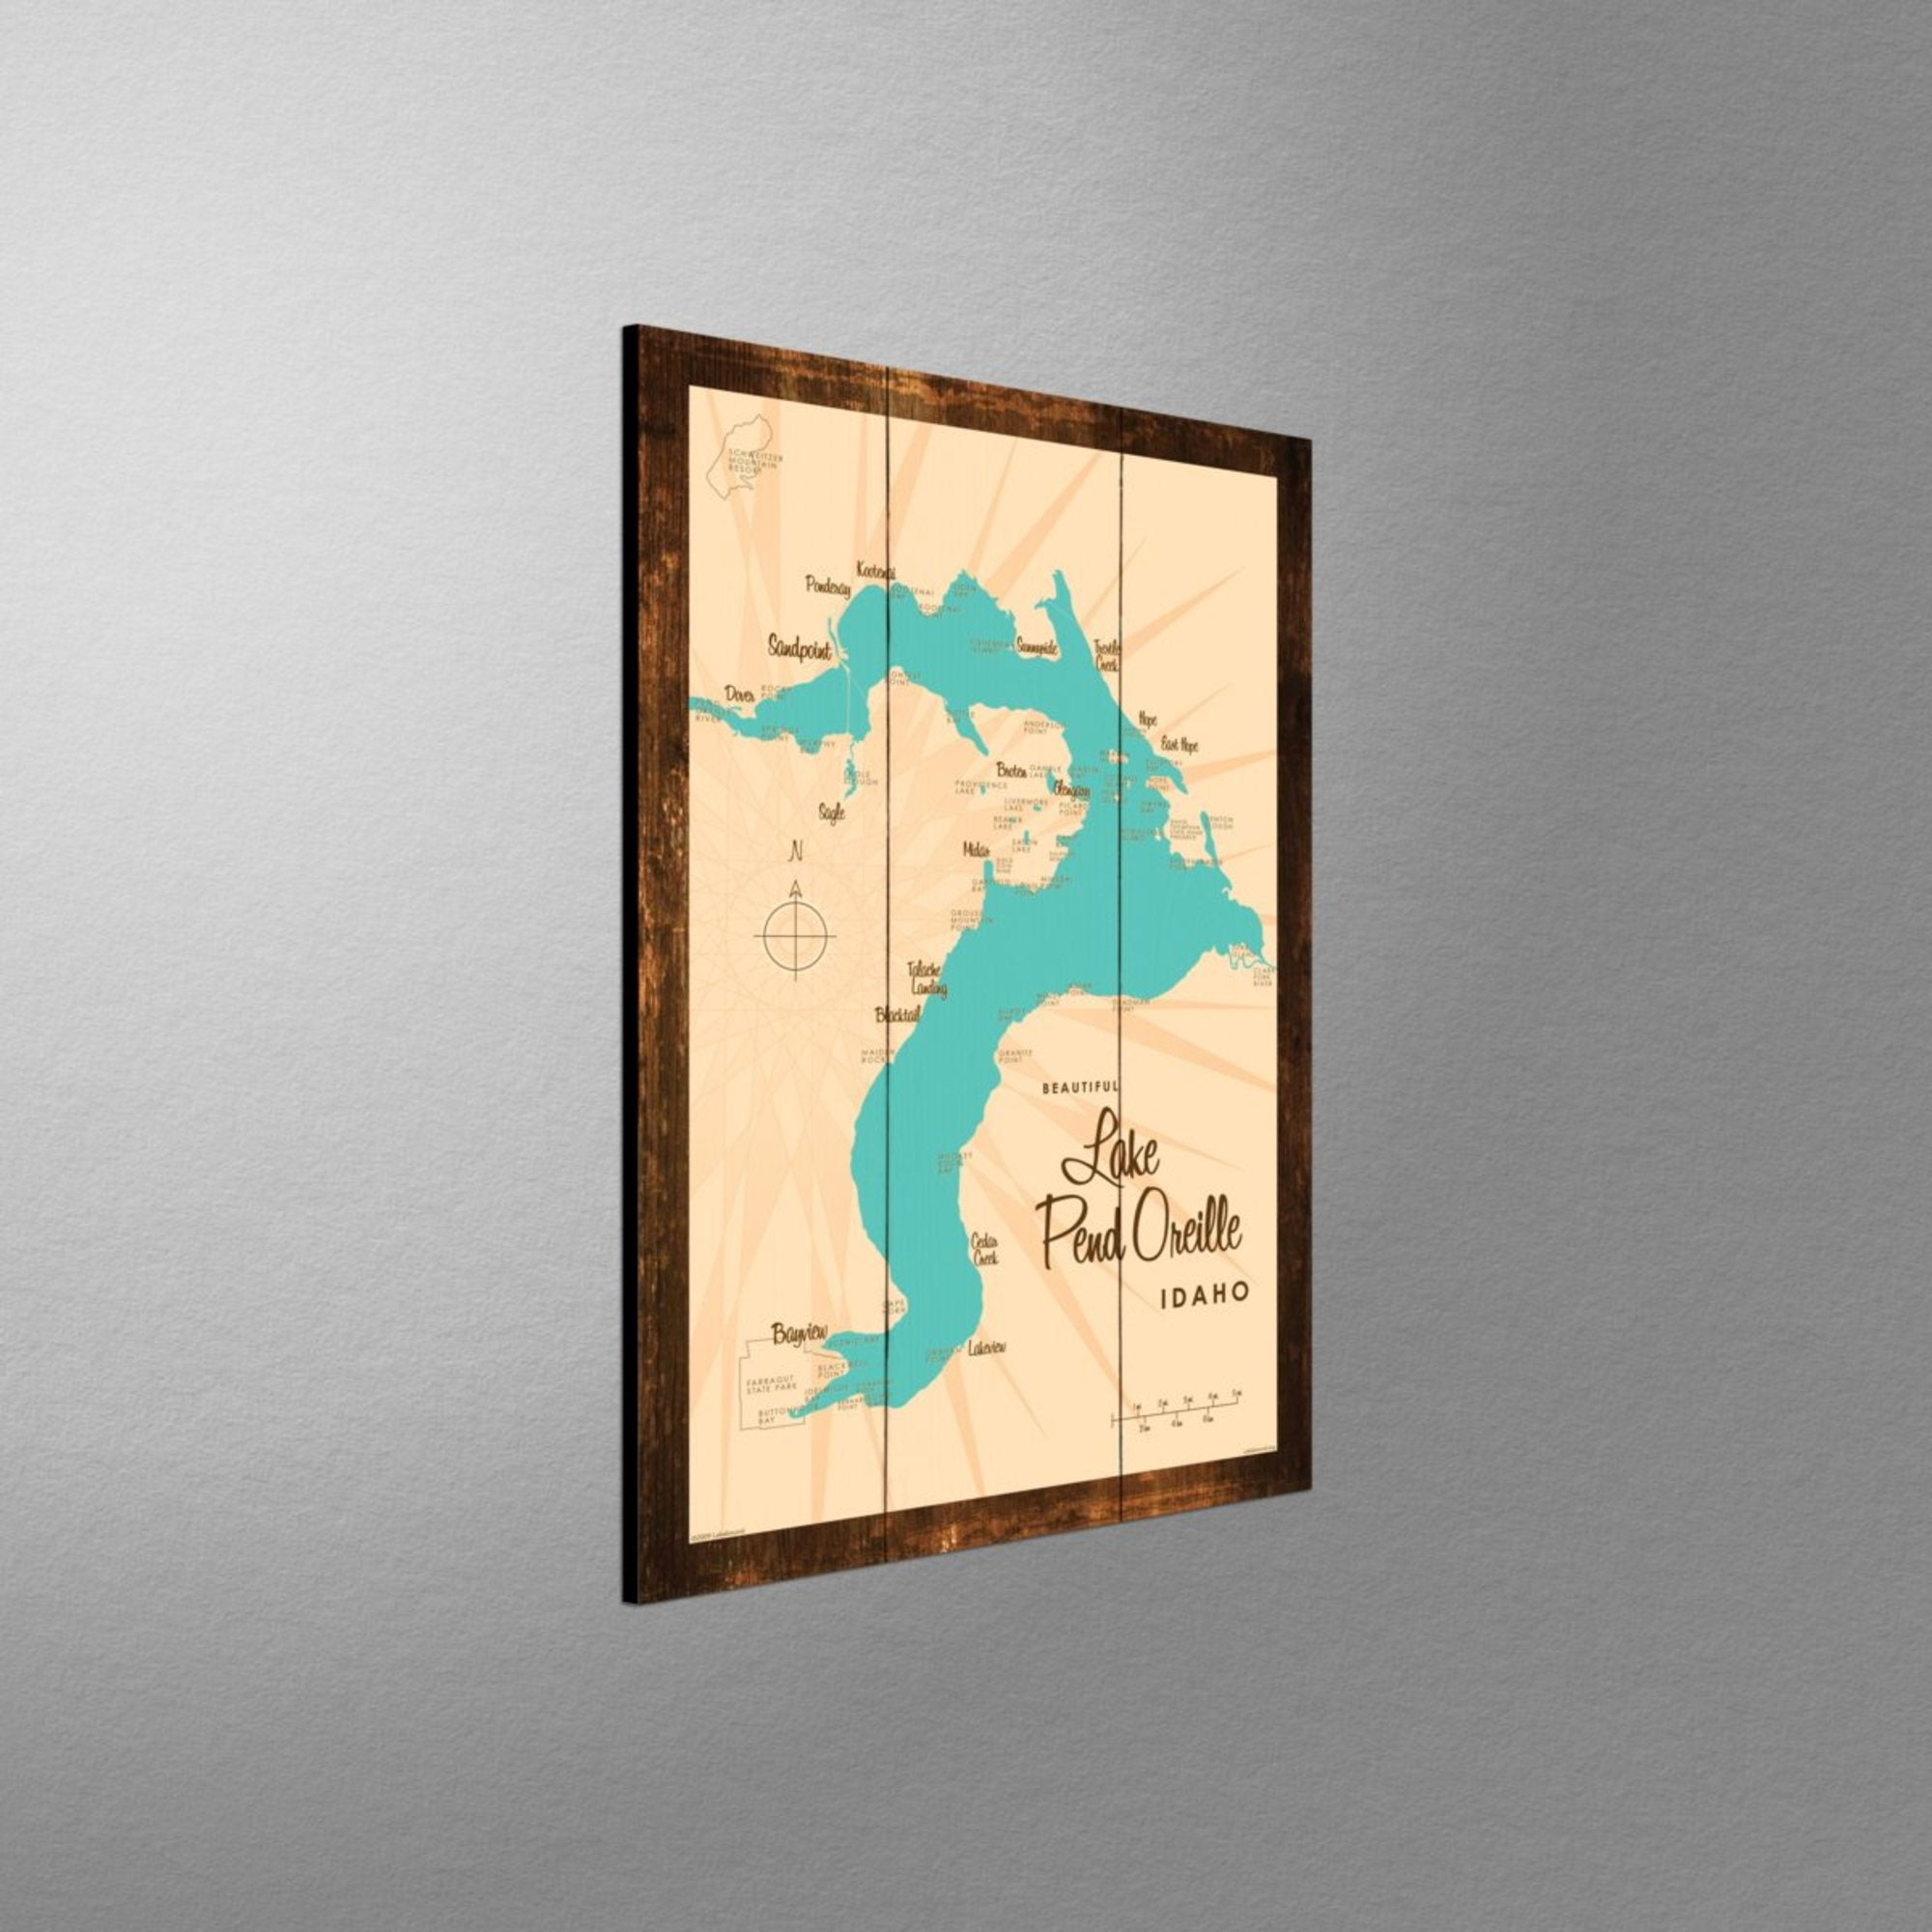 Lake Pend Oreille Idaho, Rustic Wood Sign Map Art